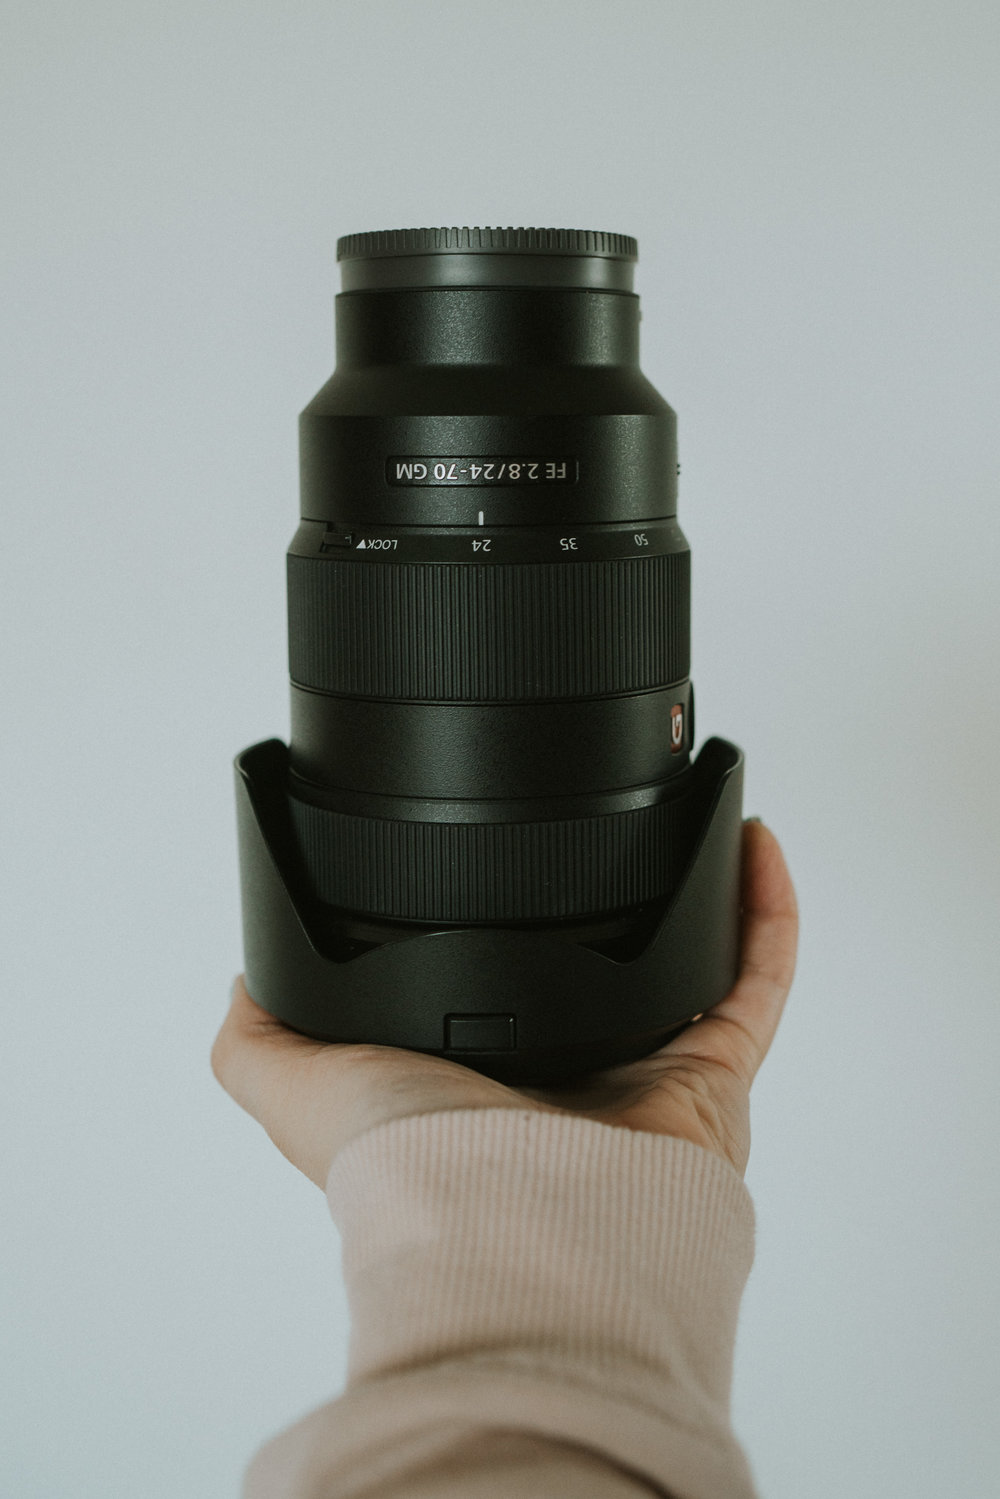 The Sony 24-70mm 2.8